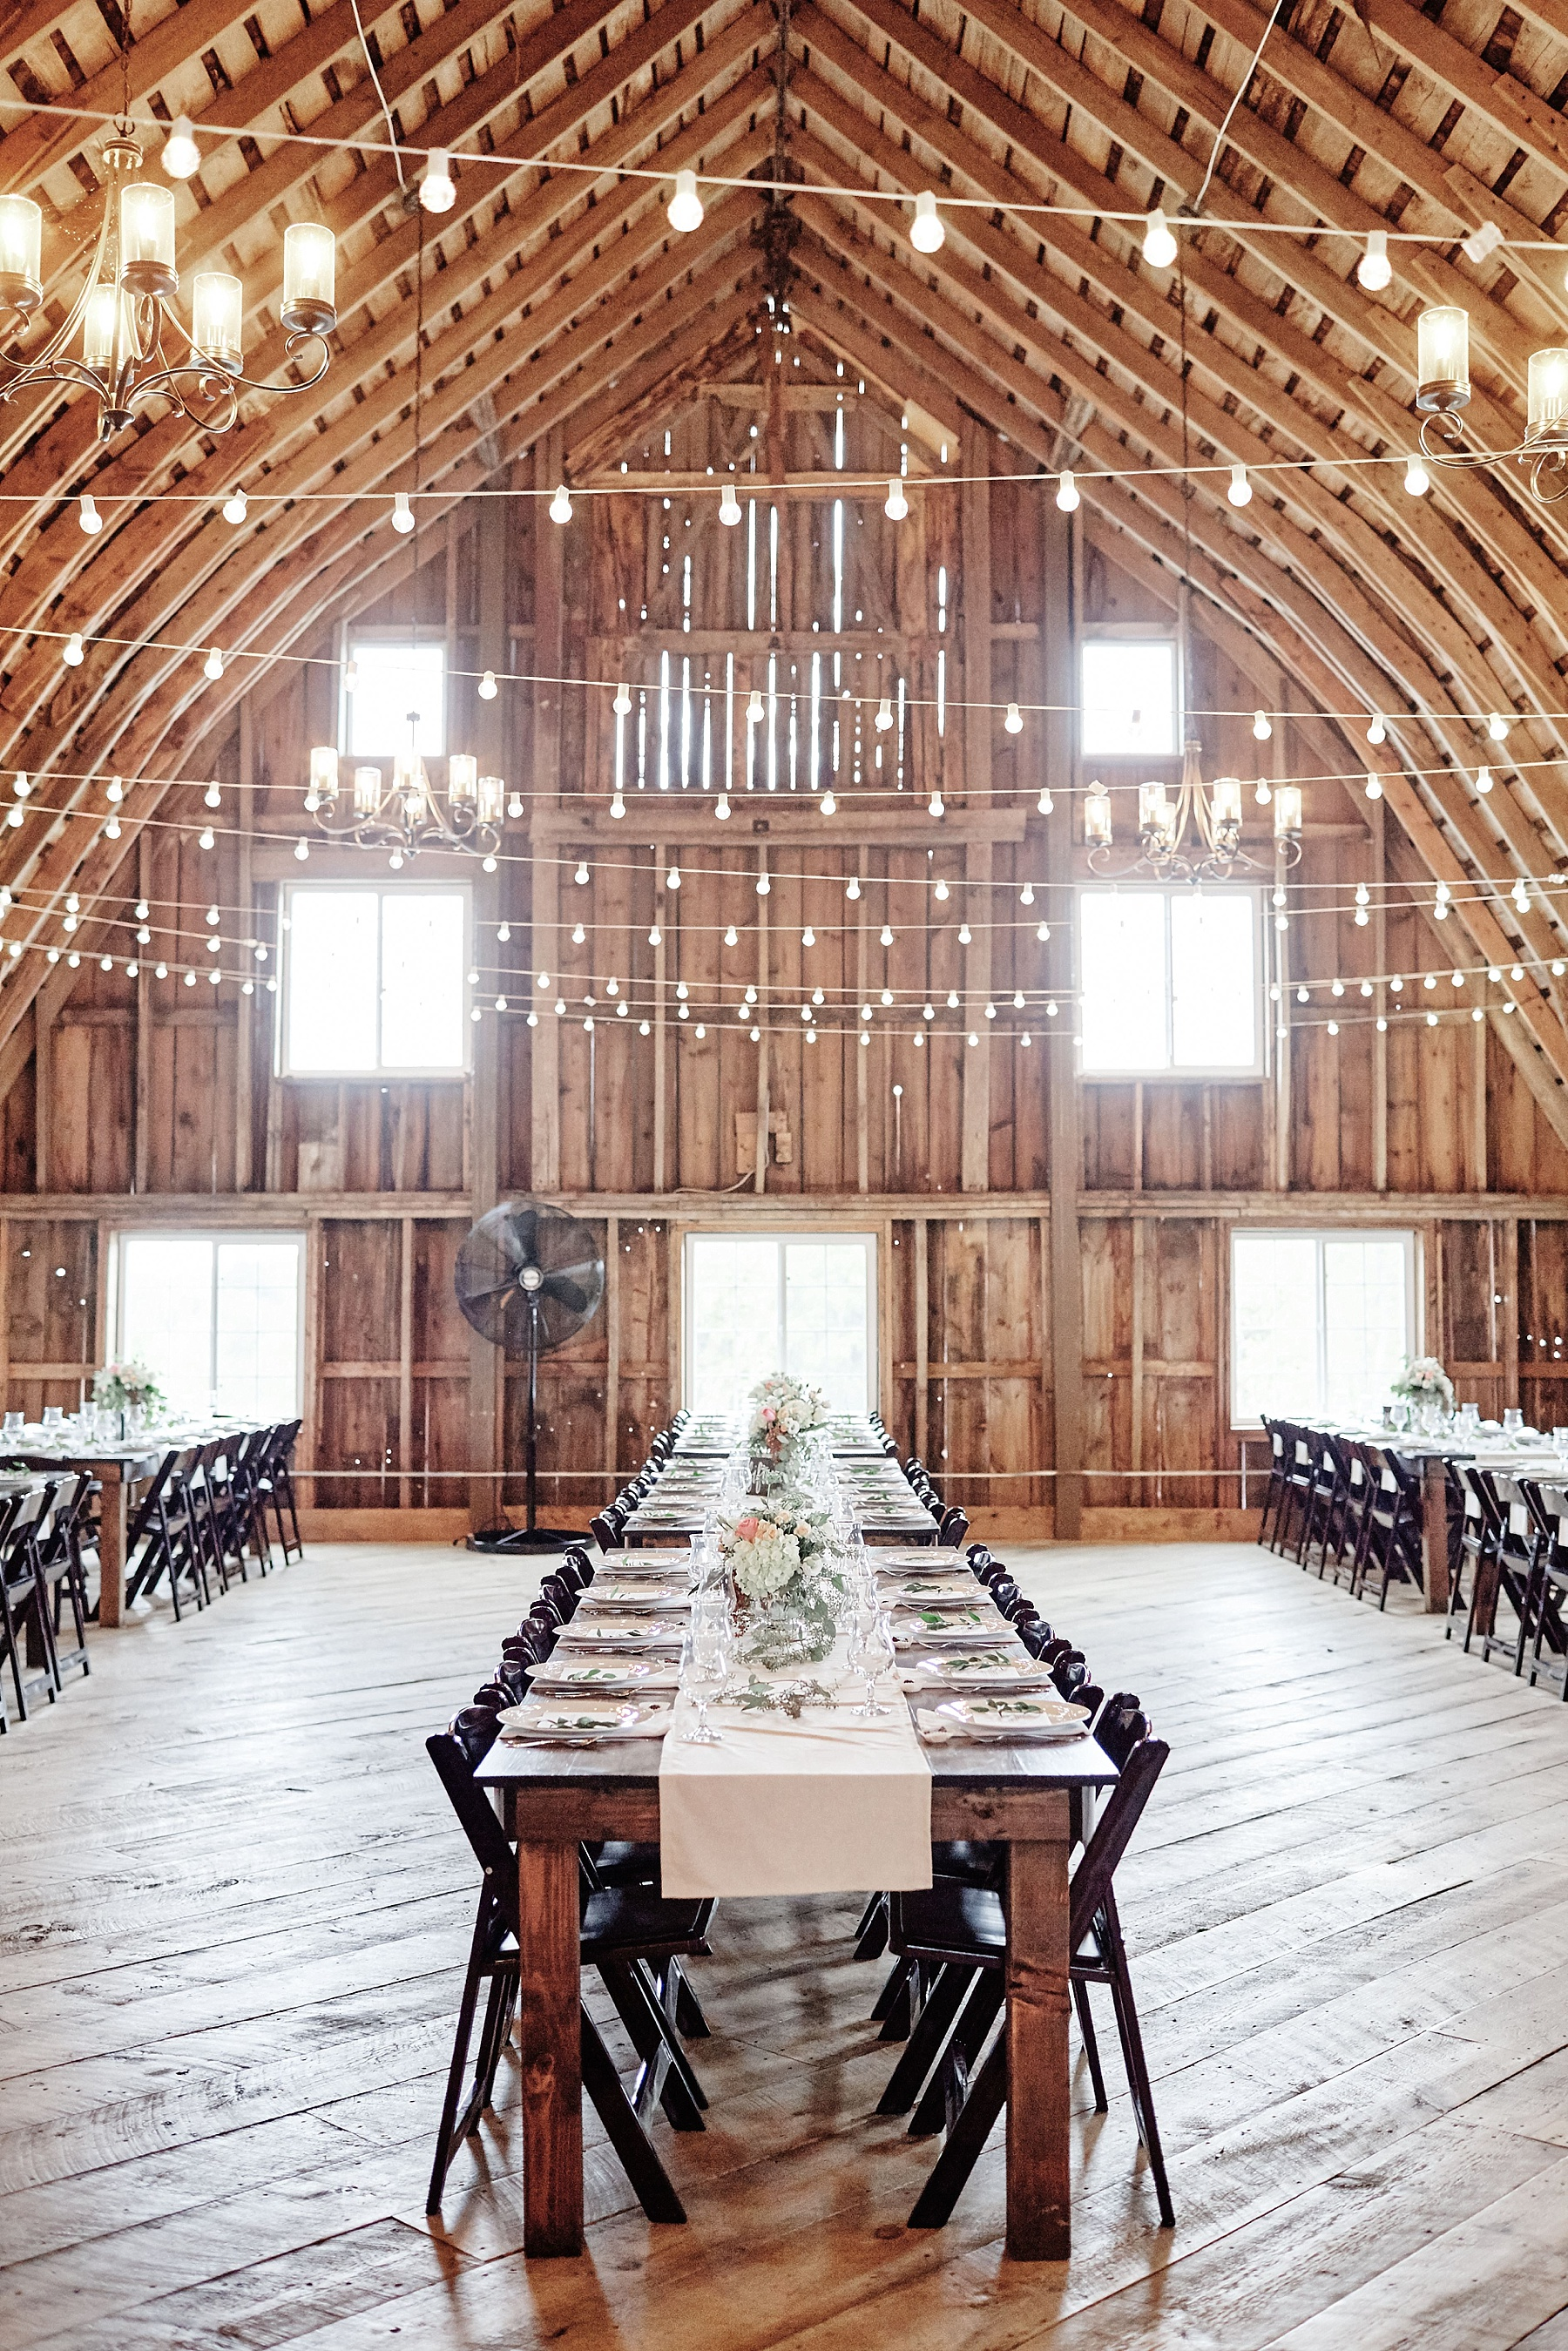 Bloom-Lake-Barn-Wedding-Schafer-Minnesota-Outdoor_0269.jpg